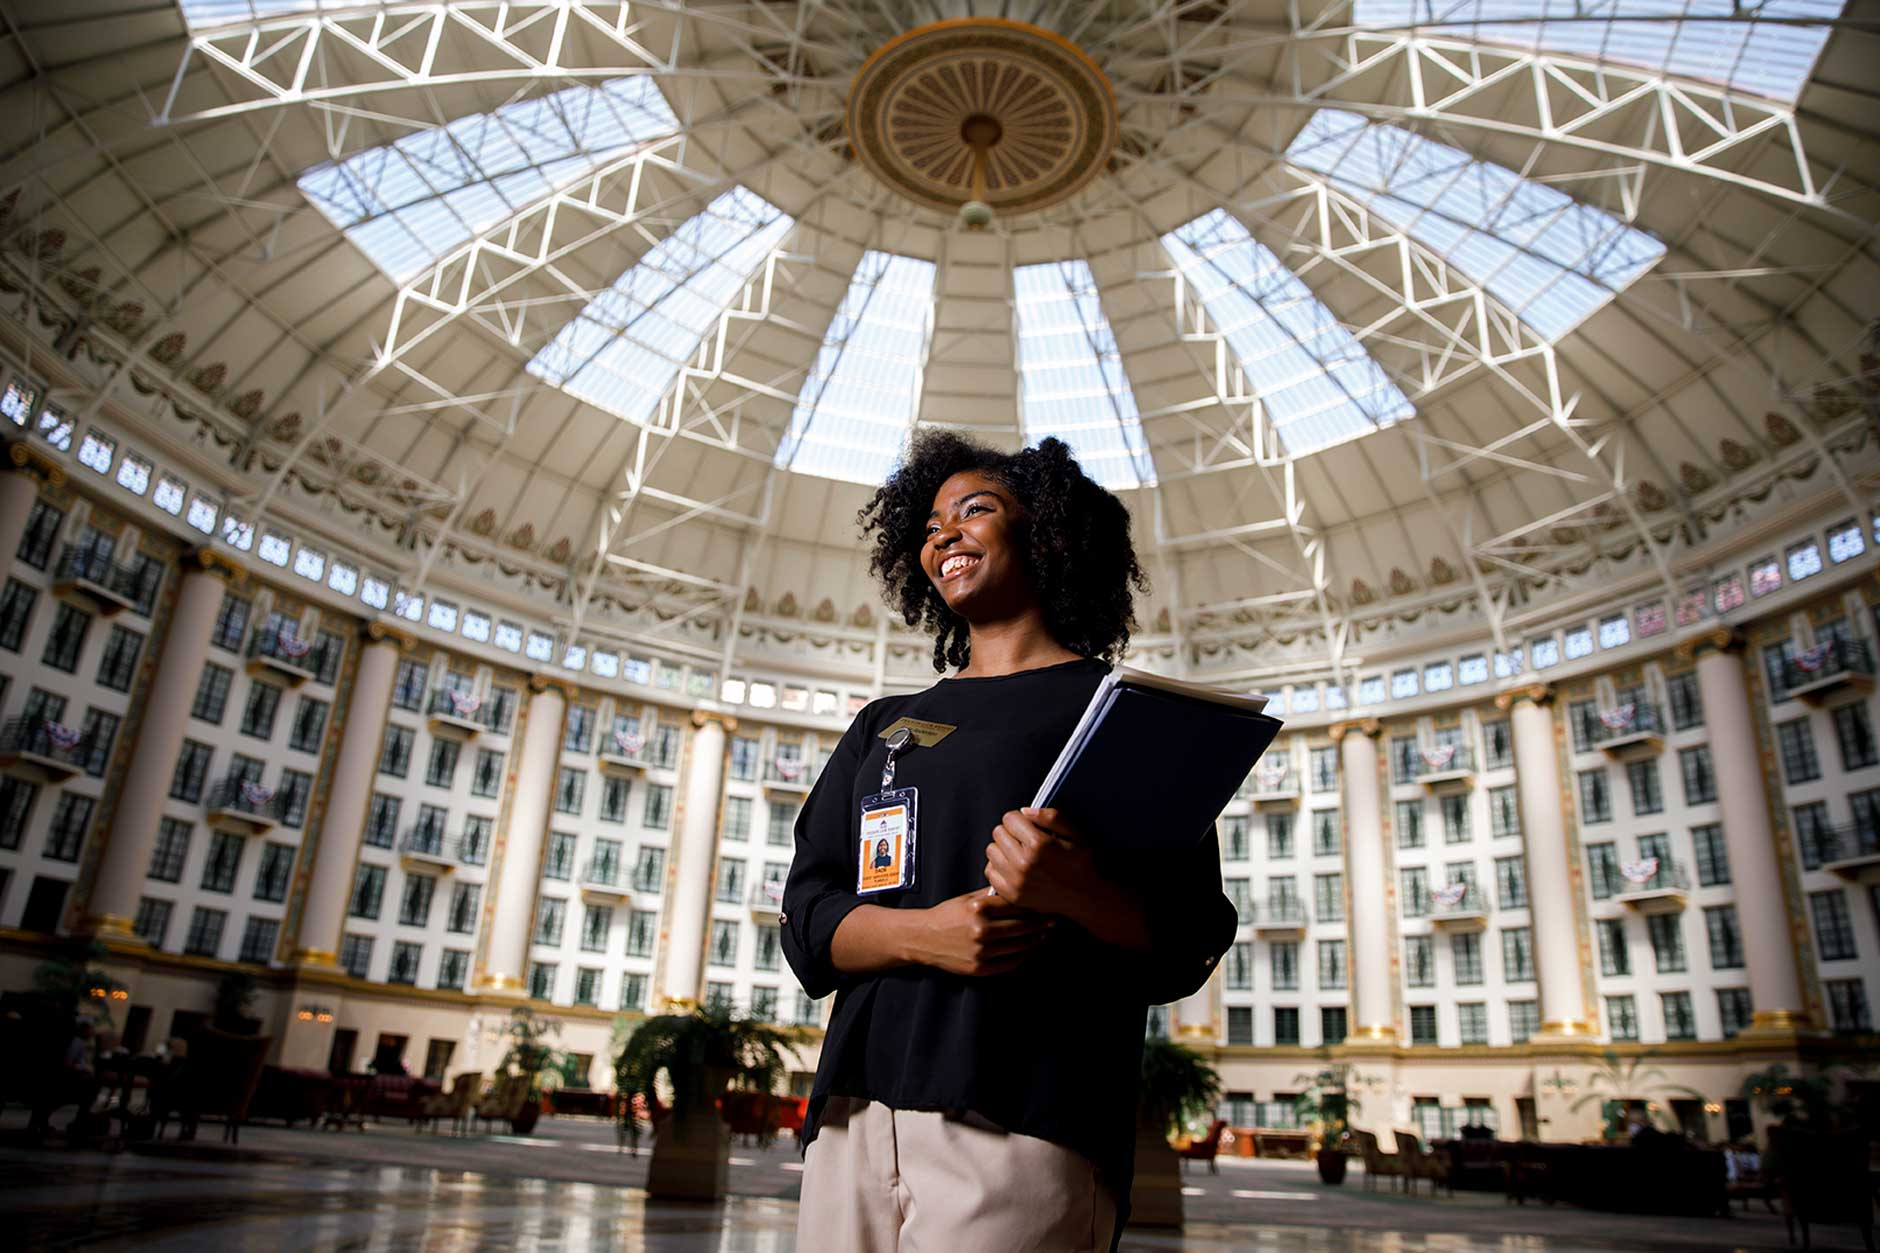 Indiana University Bloomington senior Sade Roberson, an intern at the West Baden Springs Hotel, poses for a portrait at the hotel on Wednesday, May 23, 2018. (James Brosher/IU Communications)